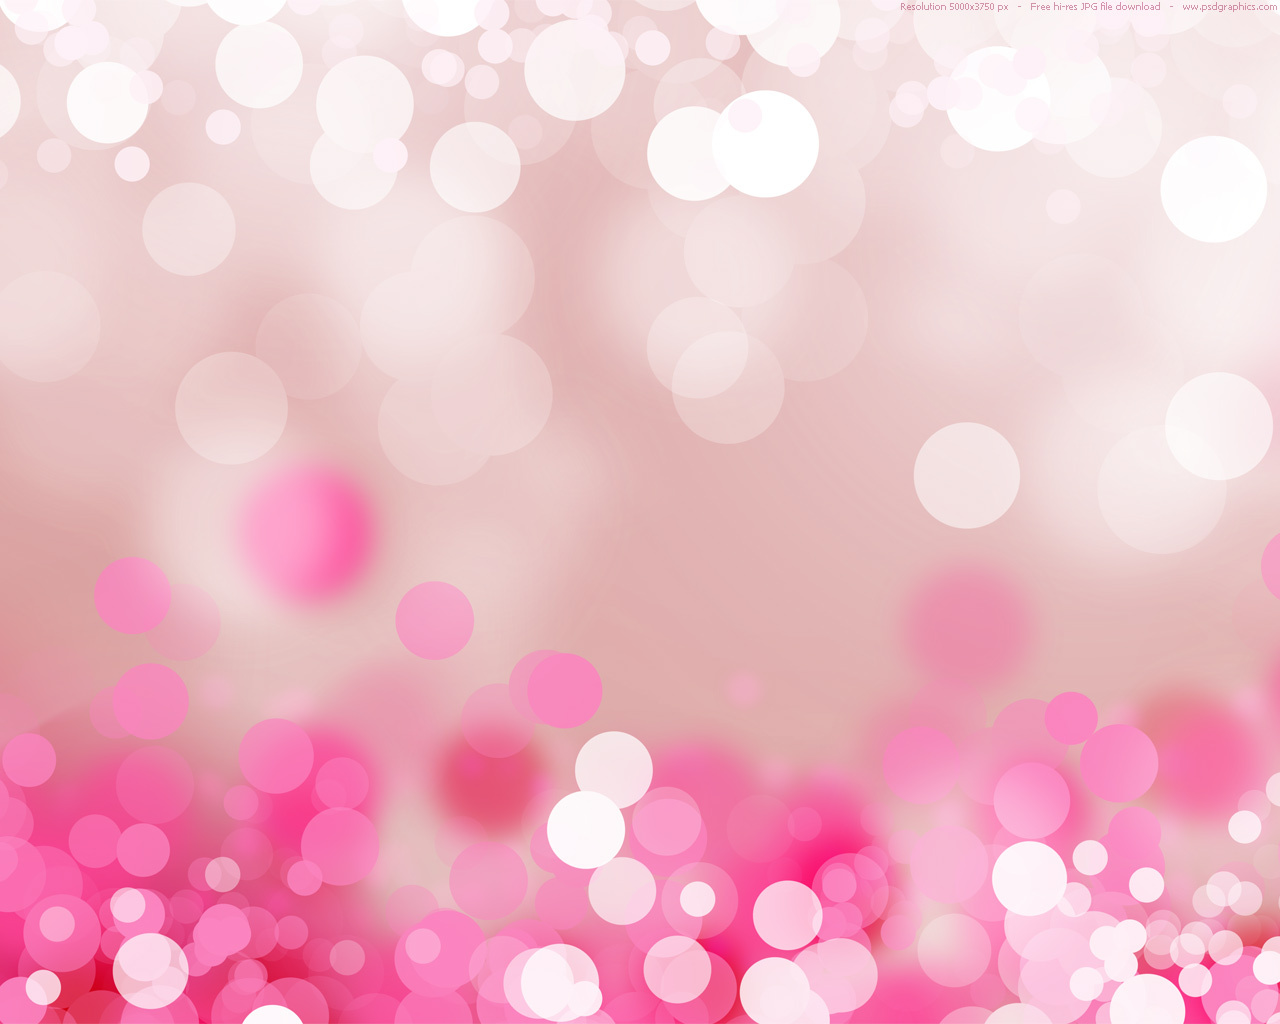 363 3638193 cute pink wallpaper tumblr baby pink background